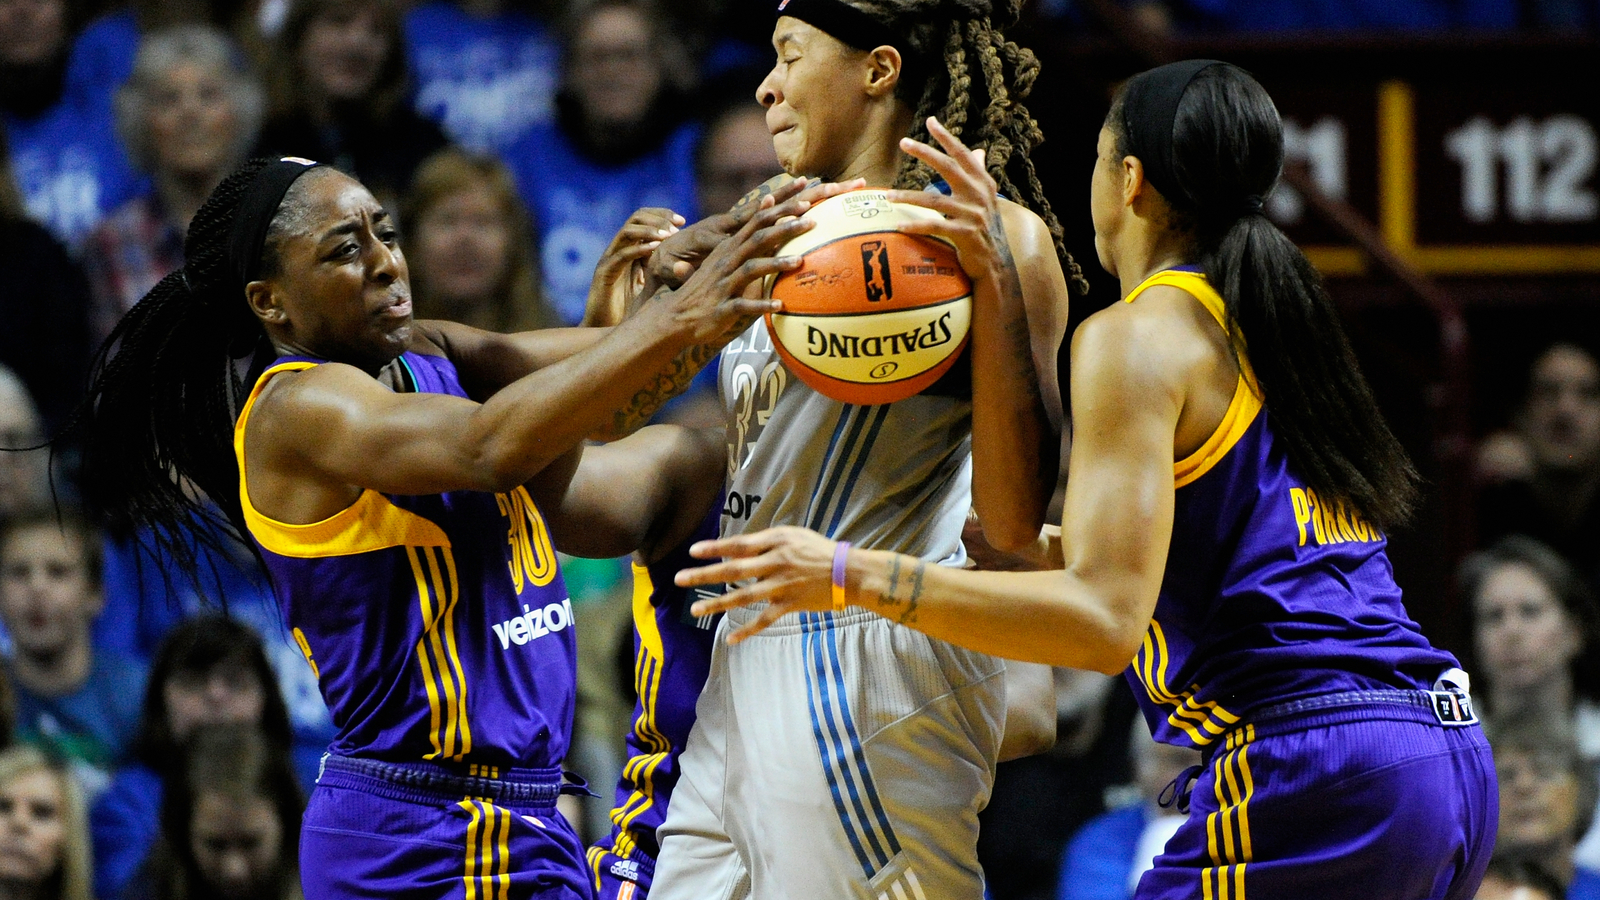 Perkins playing in WNBA Finals